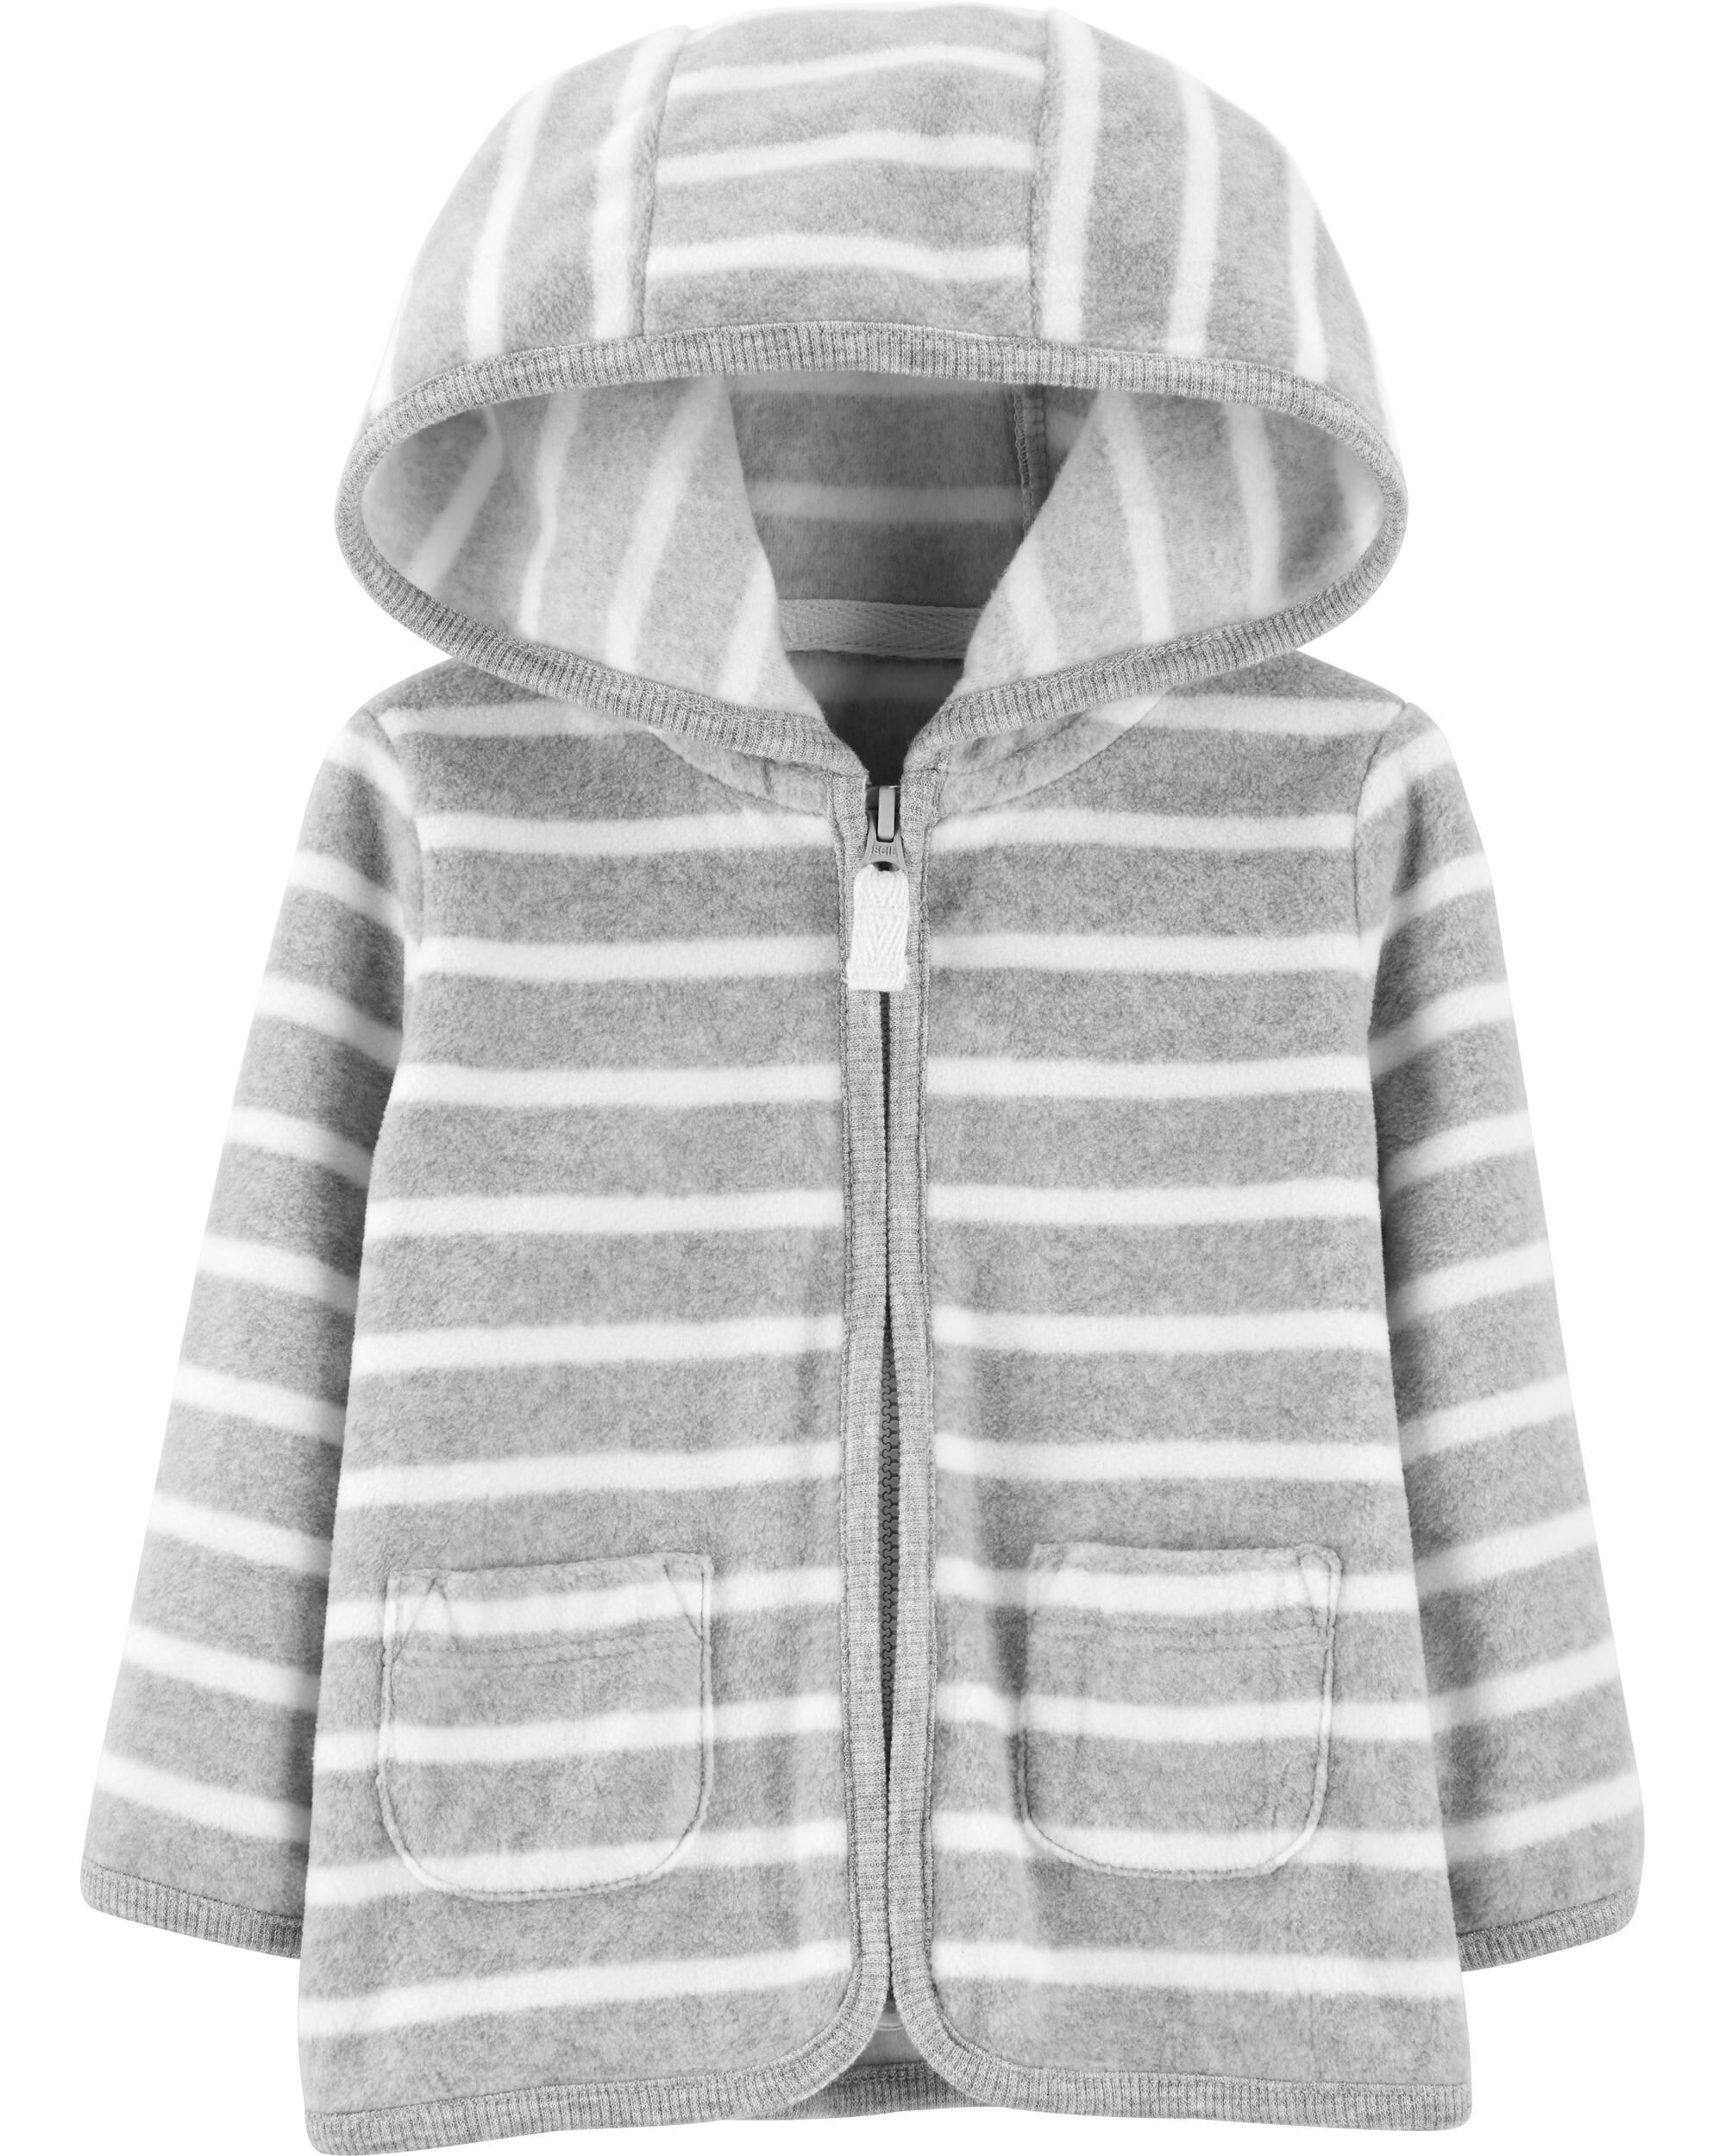 *CLEARANCE* Striped Zip-Up Fleece Cardigan